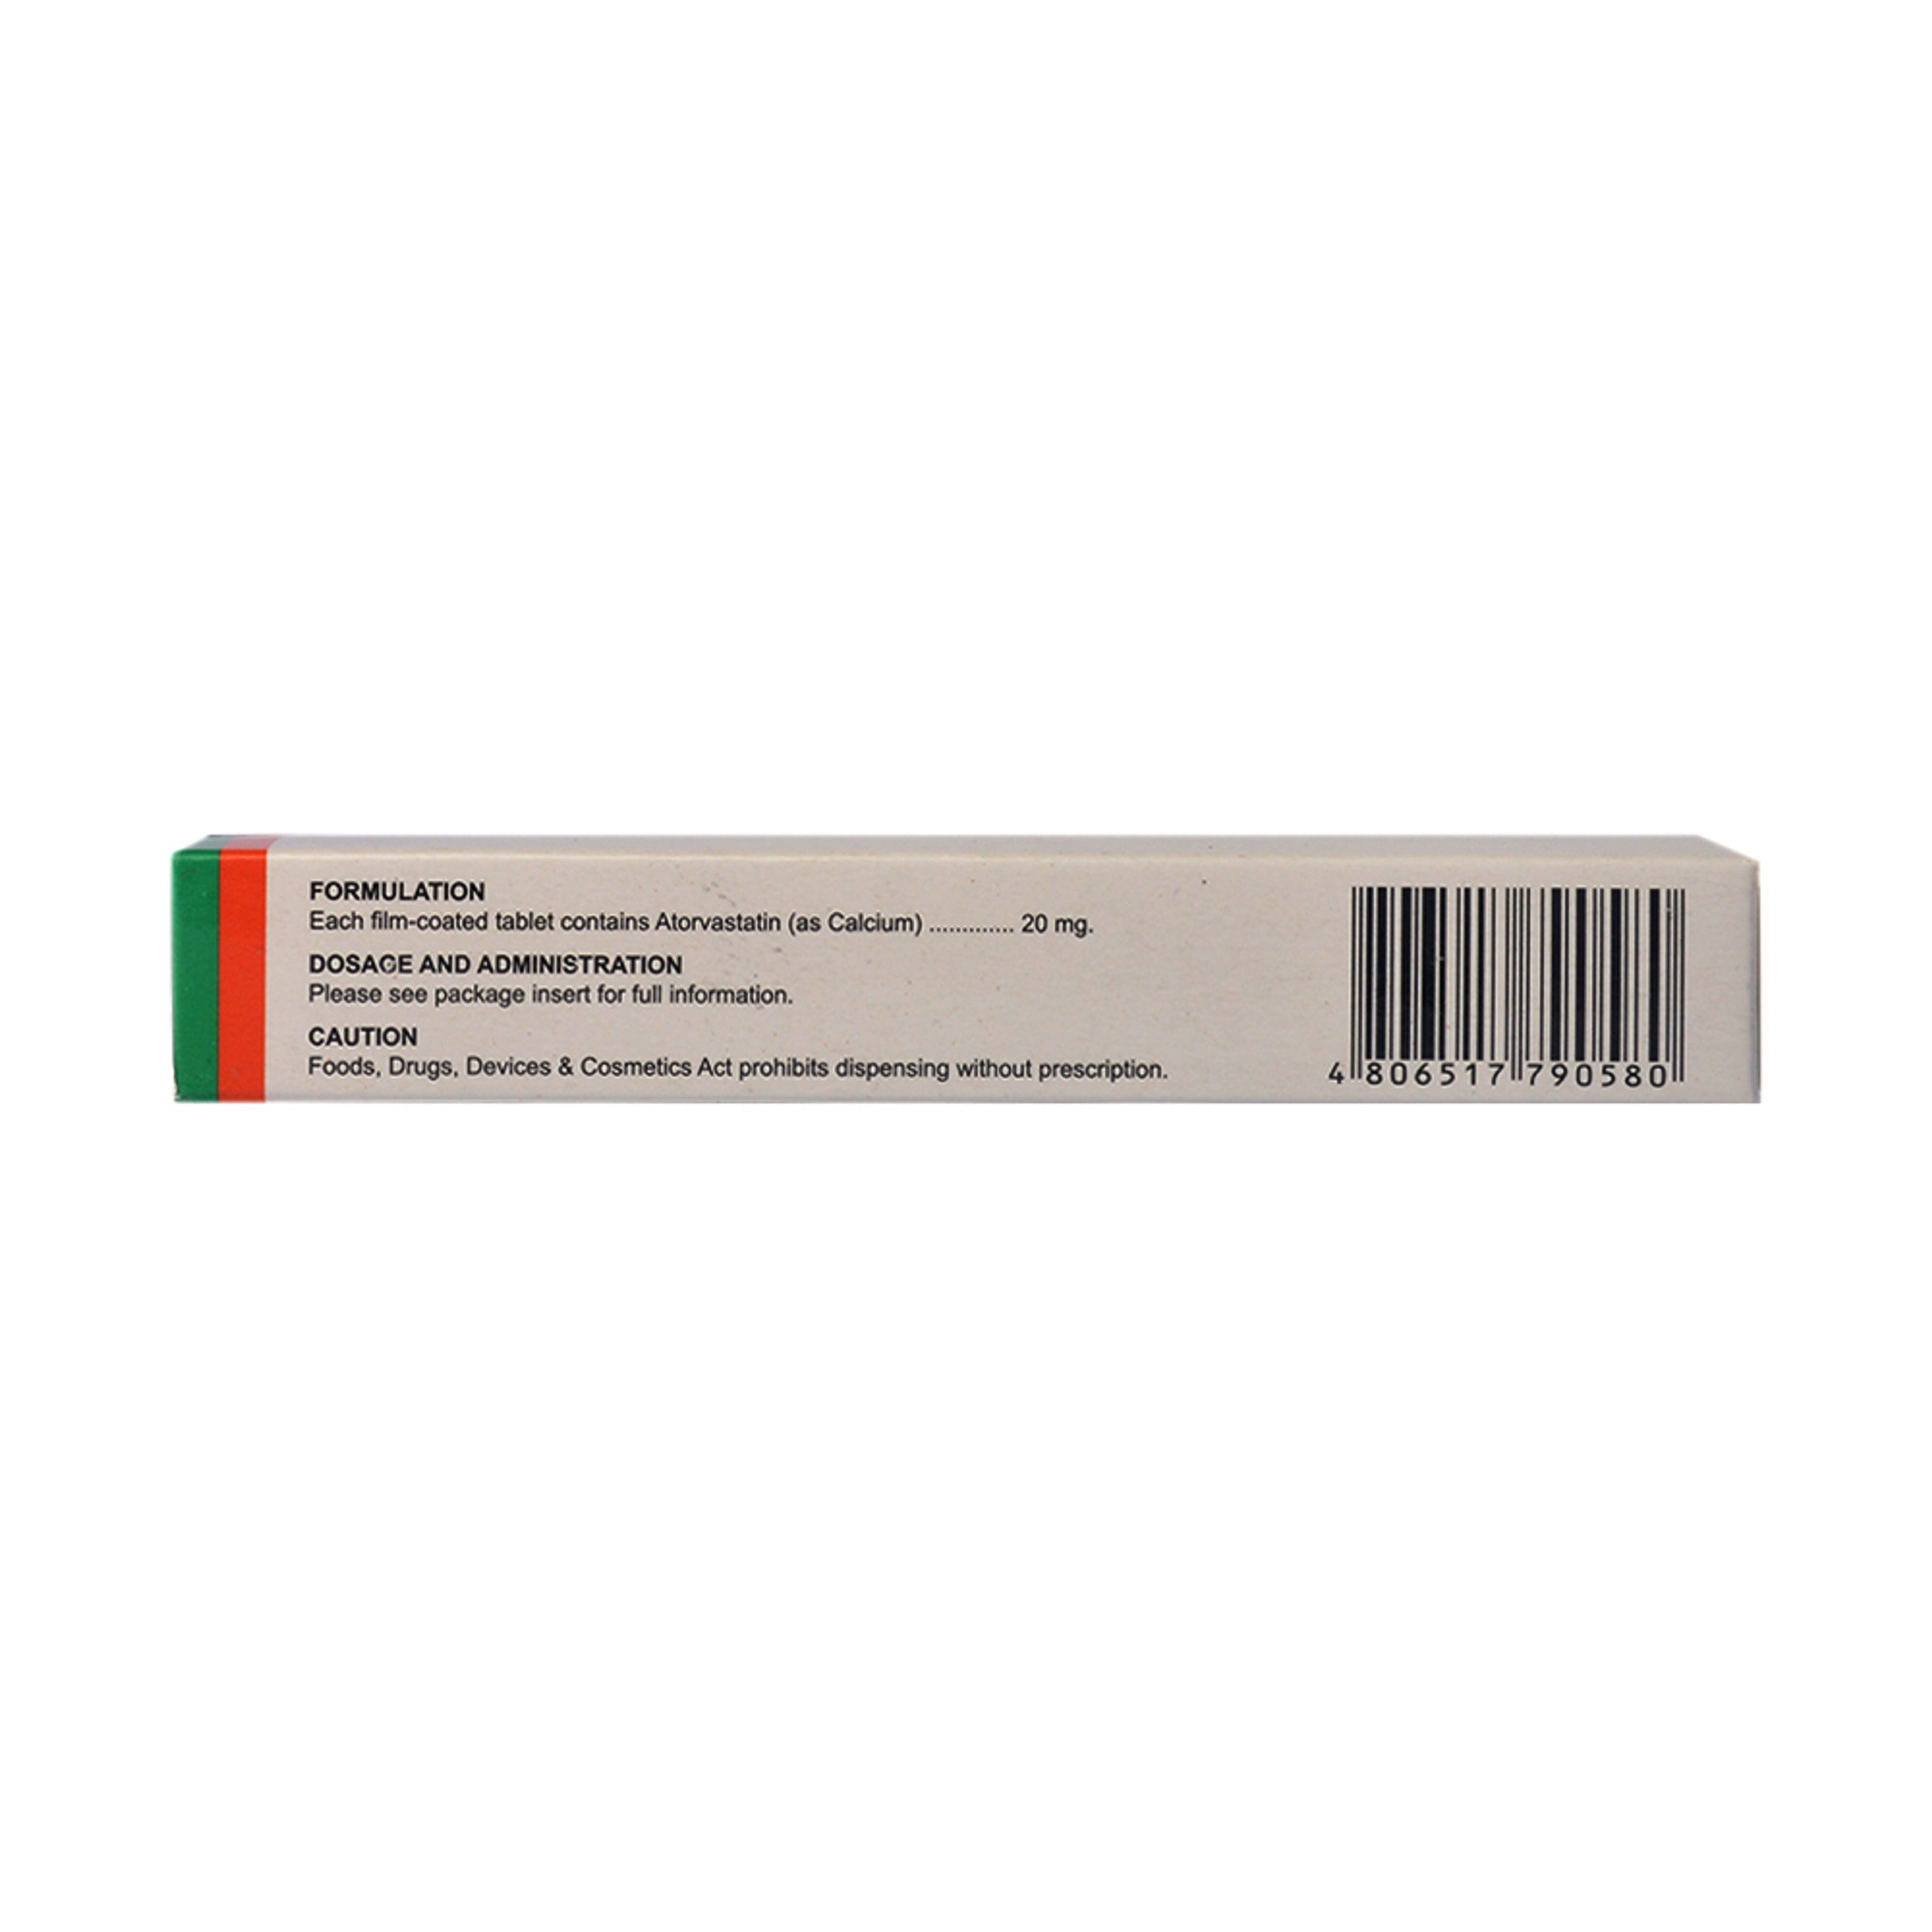 ITORVAZAtorvastatin 20Mg 1 Tablet [PRESCRIPTION REQUIRED],Free Shipping